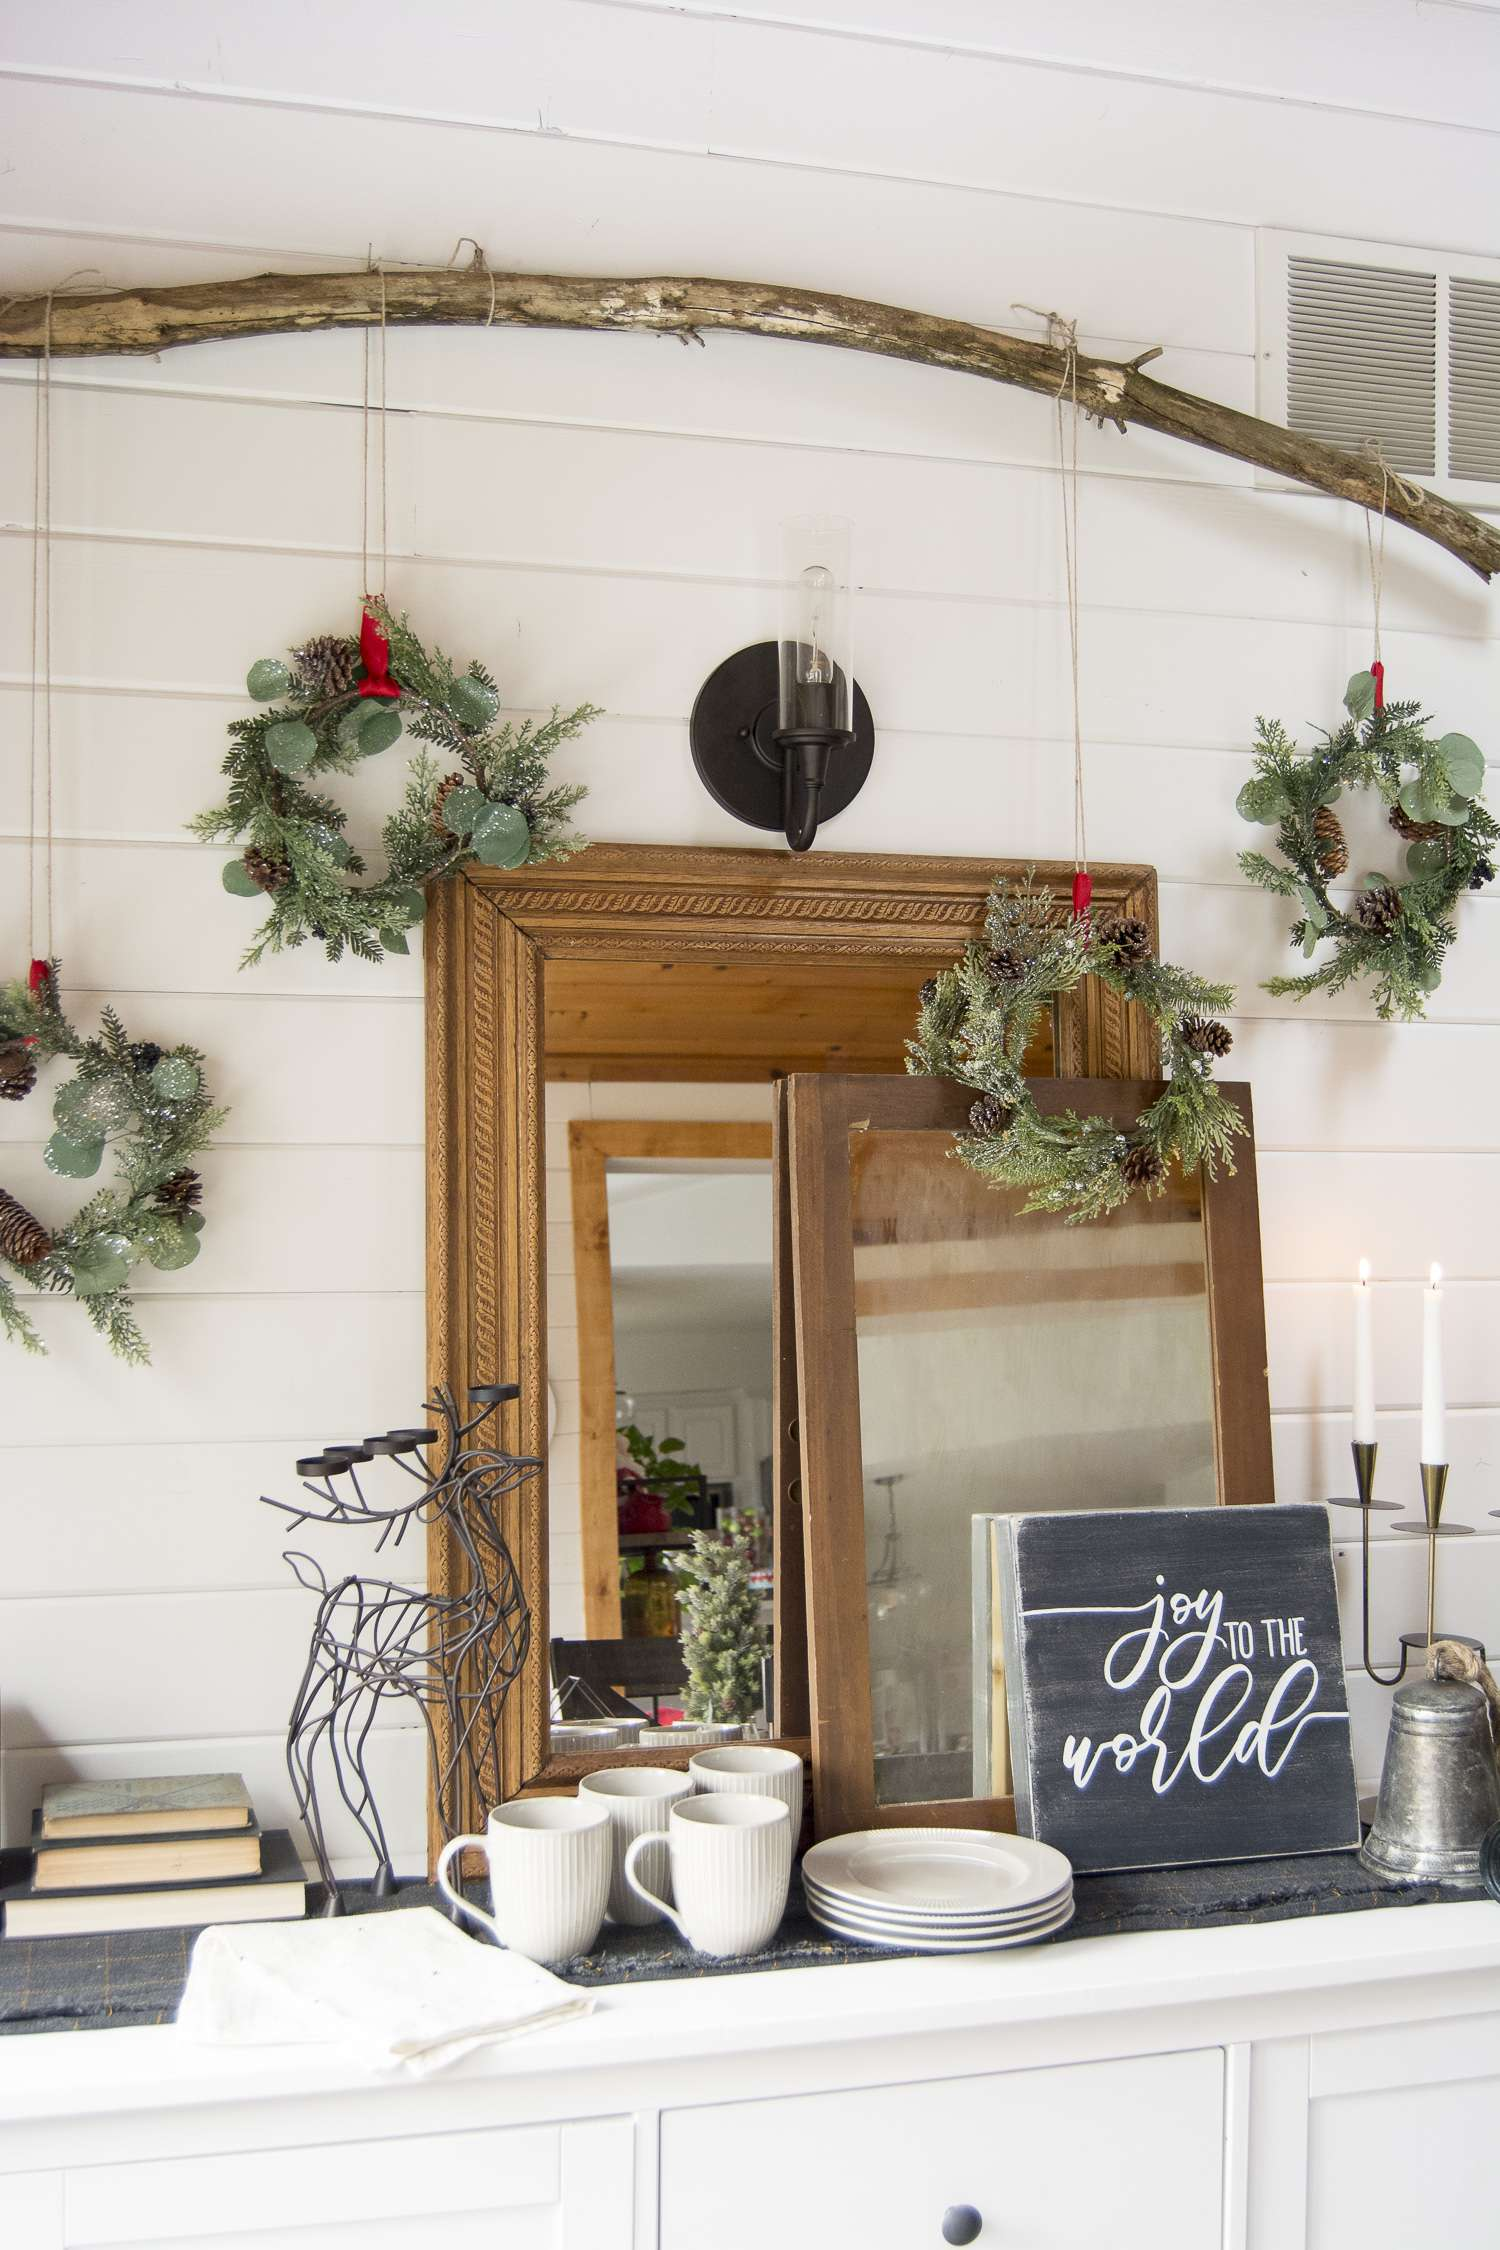 Vintage Christmas decorations are a beautiful addition to your Christmas decor. See how I styled